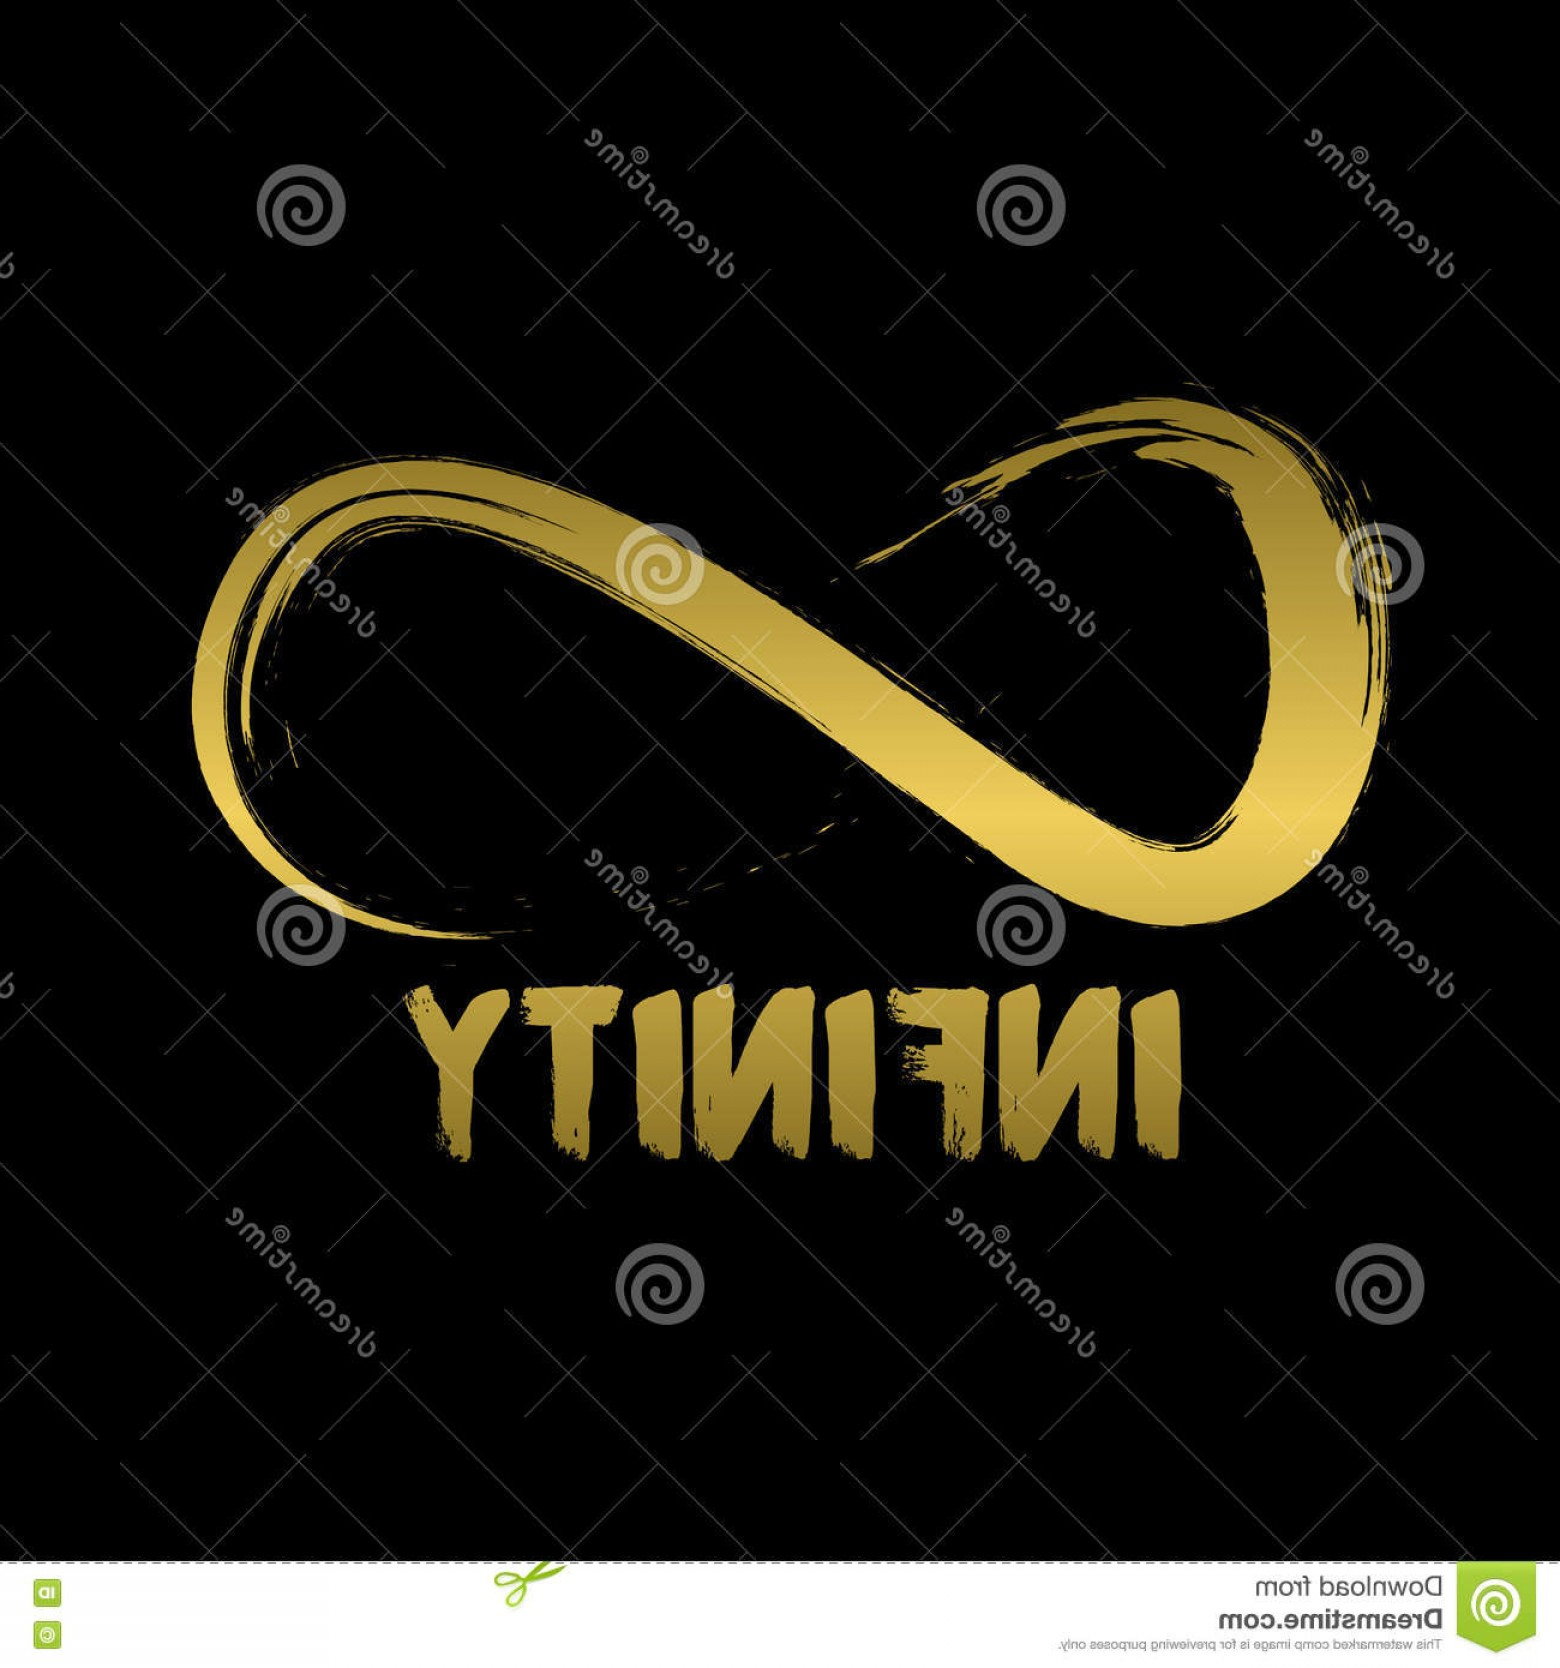 Decorative Infinity Symbol Vector: Stock Illustration Infinity Symbol Hand Drawn Logo Concept Simple Your Business Quite Unique Can Stand Crowd Easy To Image